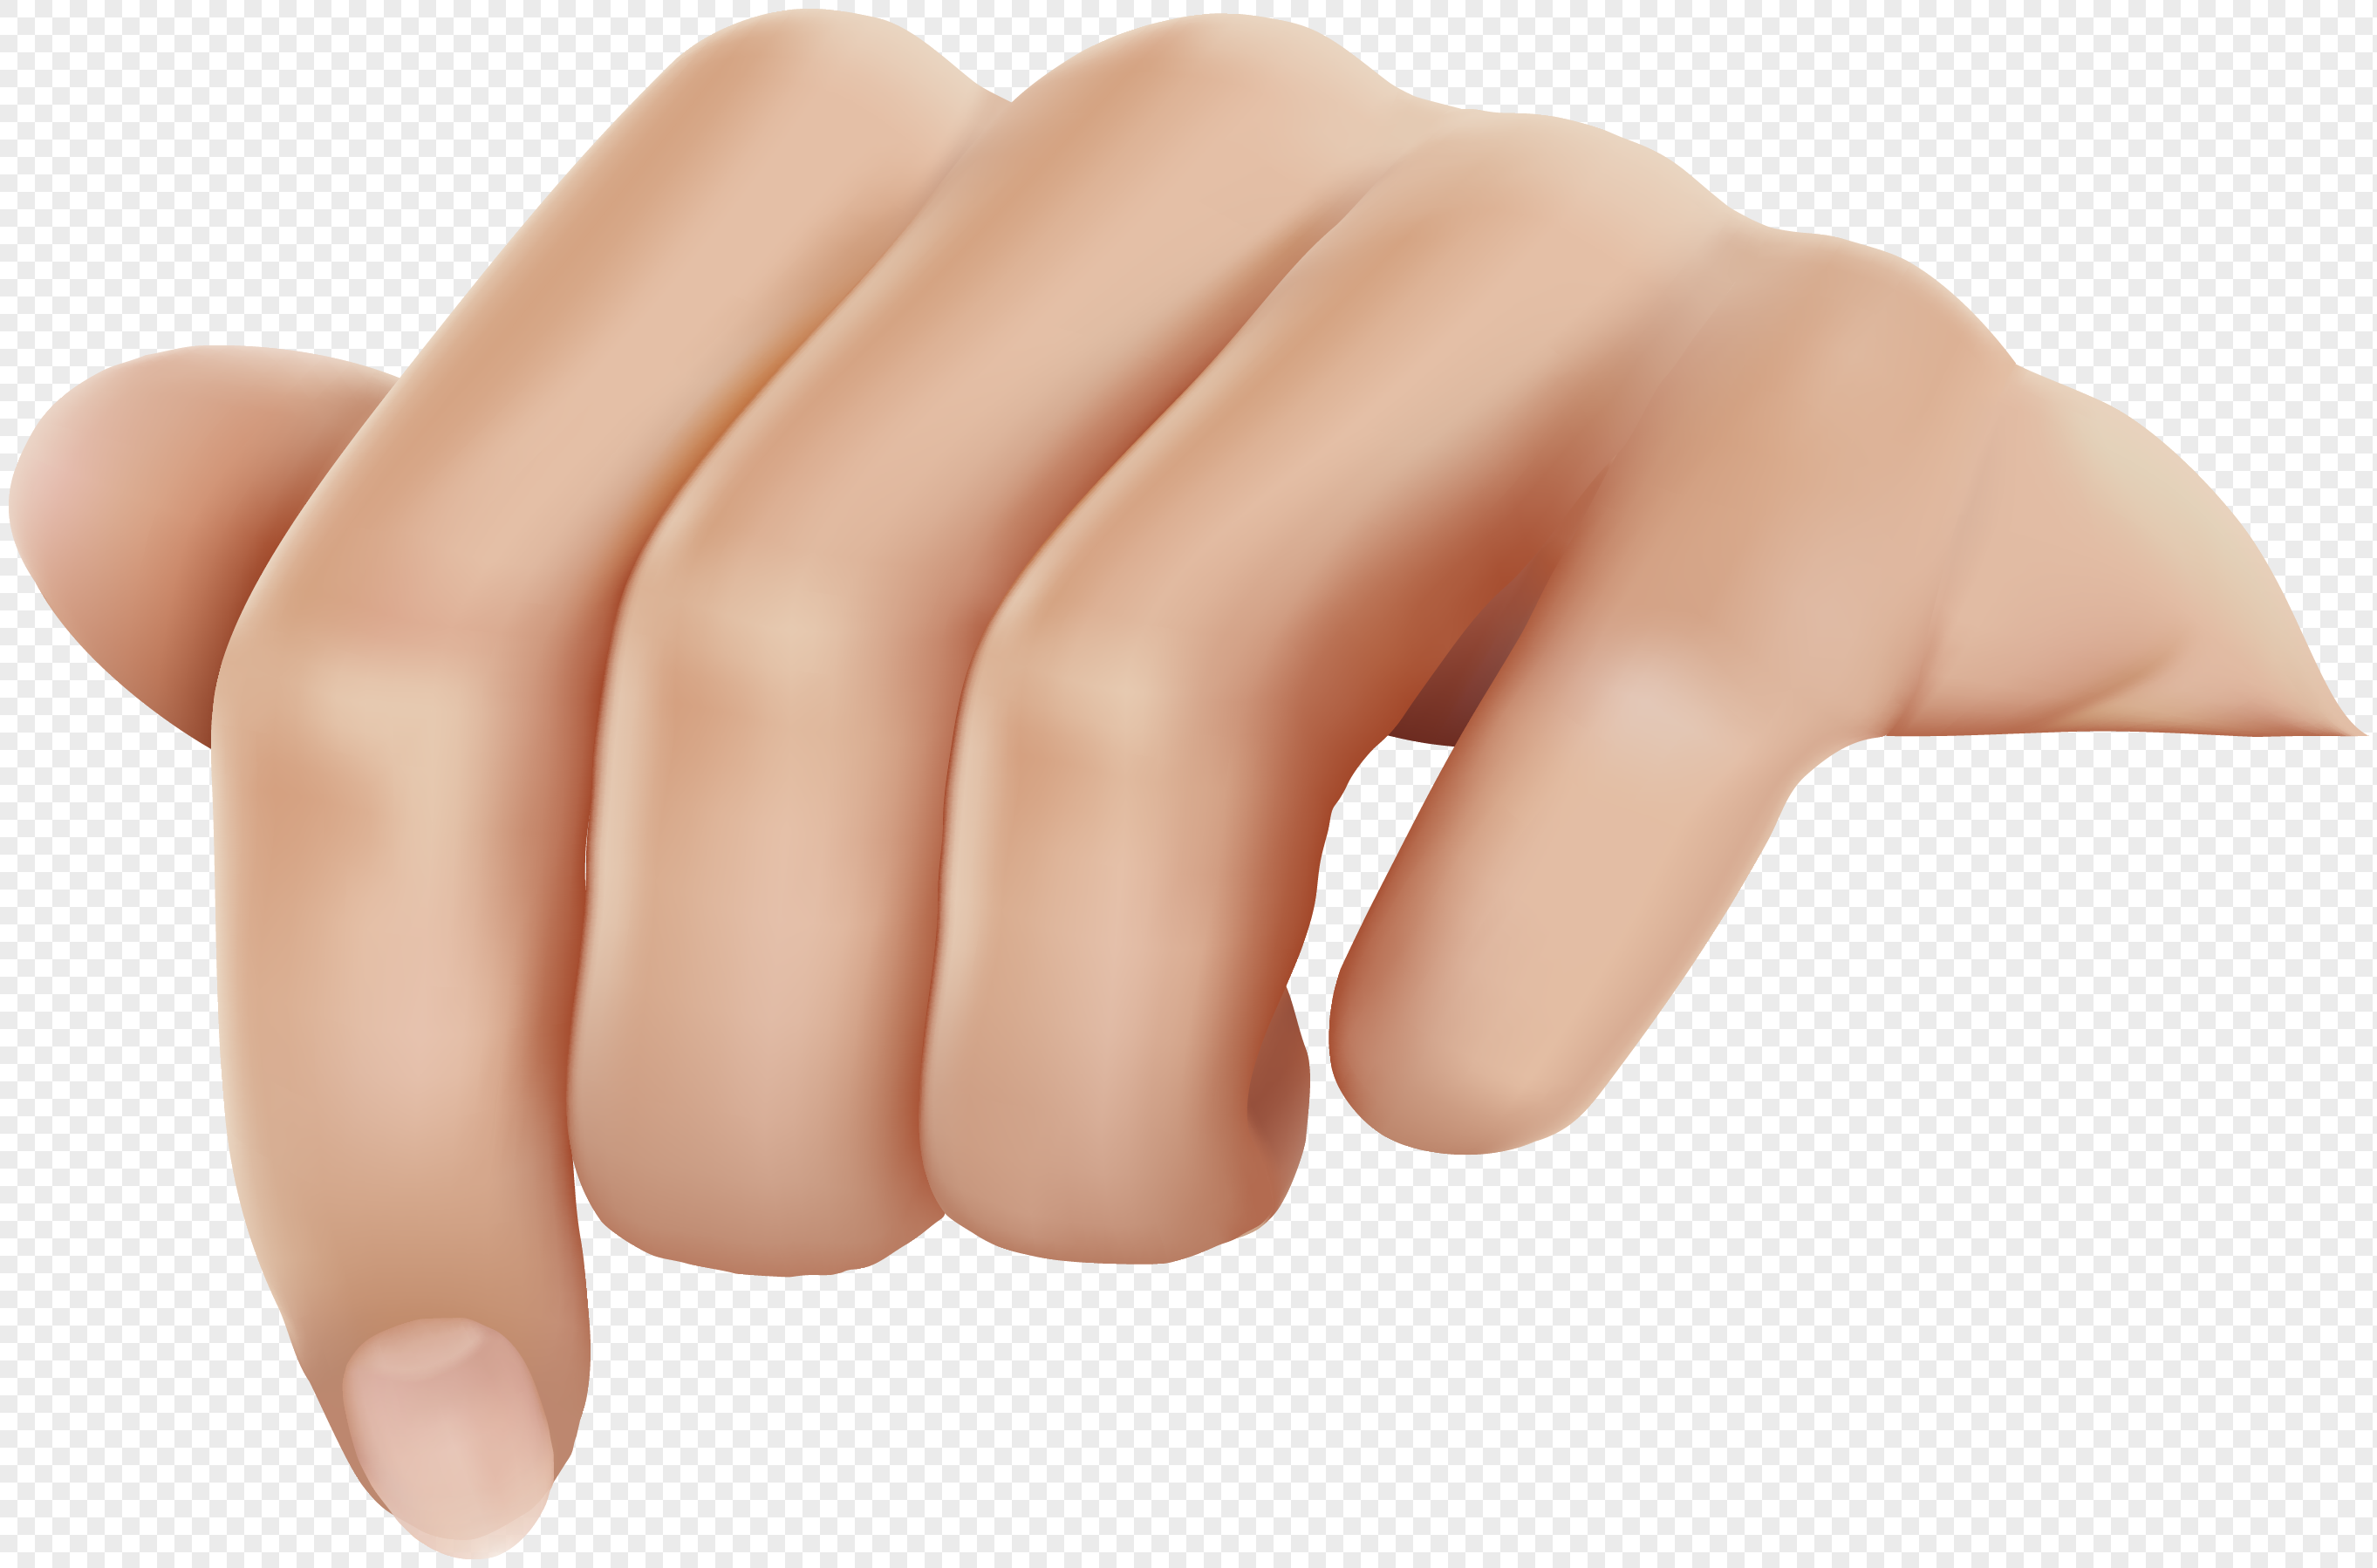 A Delicate Hand Png Image Picture Free D 120280 Png Images Pngio Hand graphy, lifted hands, hands illustration, people. a delicate hand png image picture free